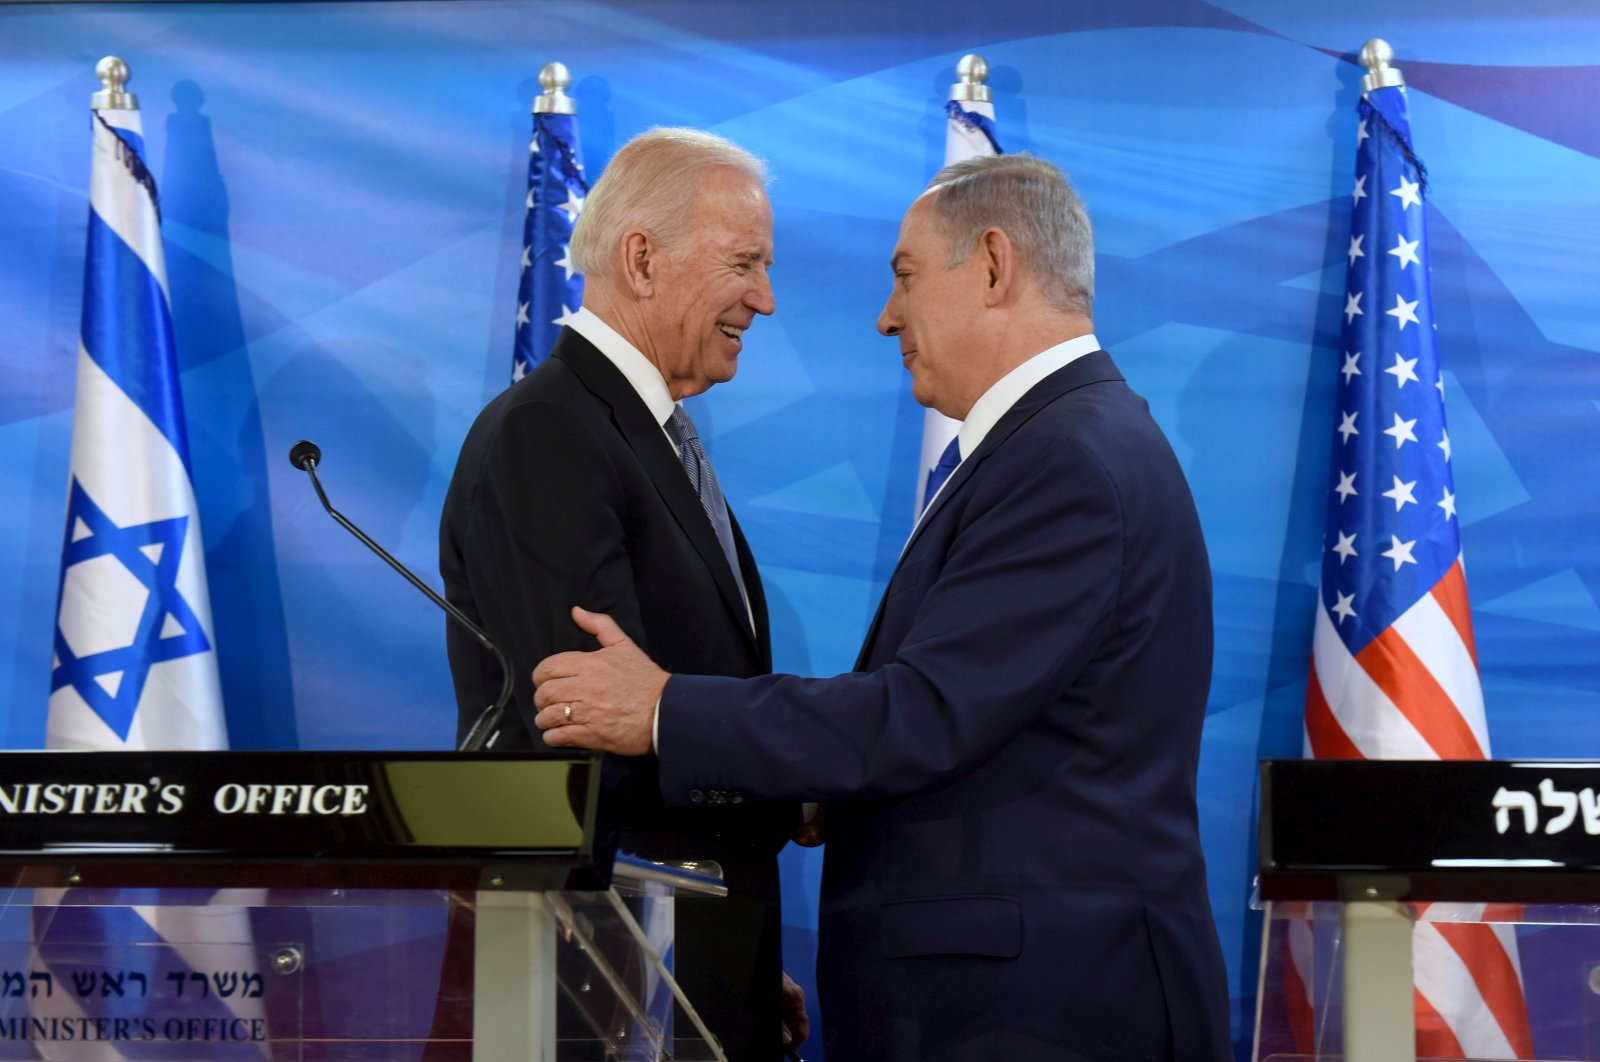 U.S.' then-Vice President Joe Biden (L) shakes hands with Israeli Prime Minister Benjamin Netanyahu as they deliver joint statements during their meeting in Jerusalem March 9, 2016. (Reuters Photo)